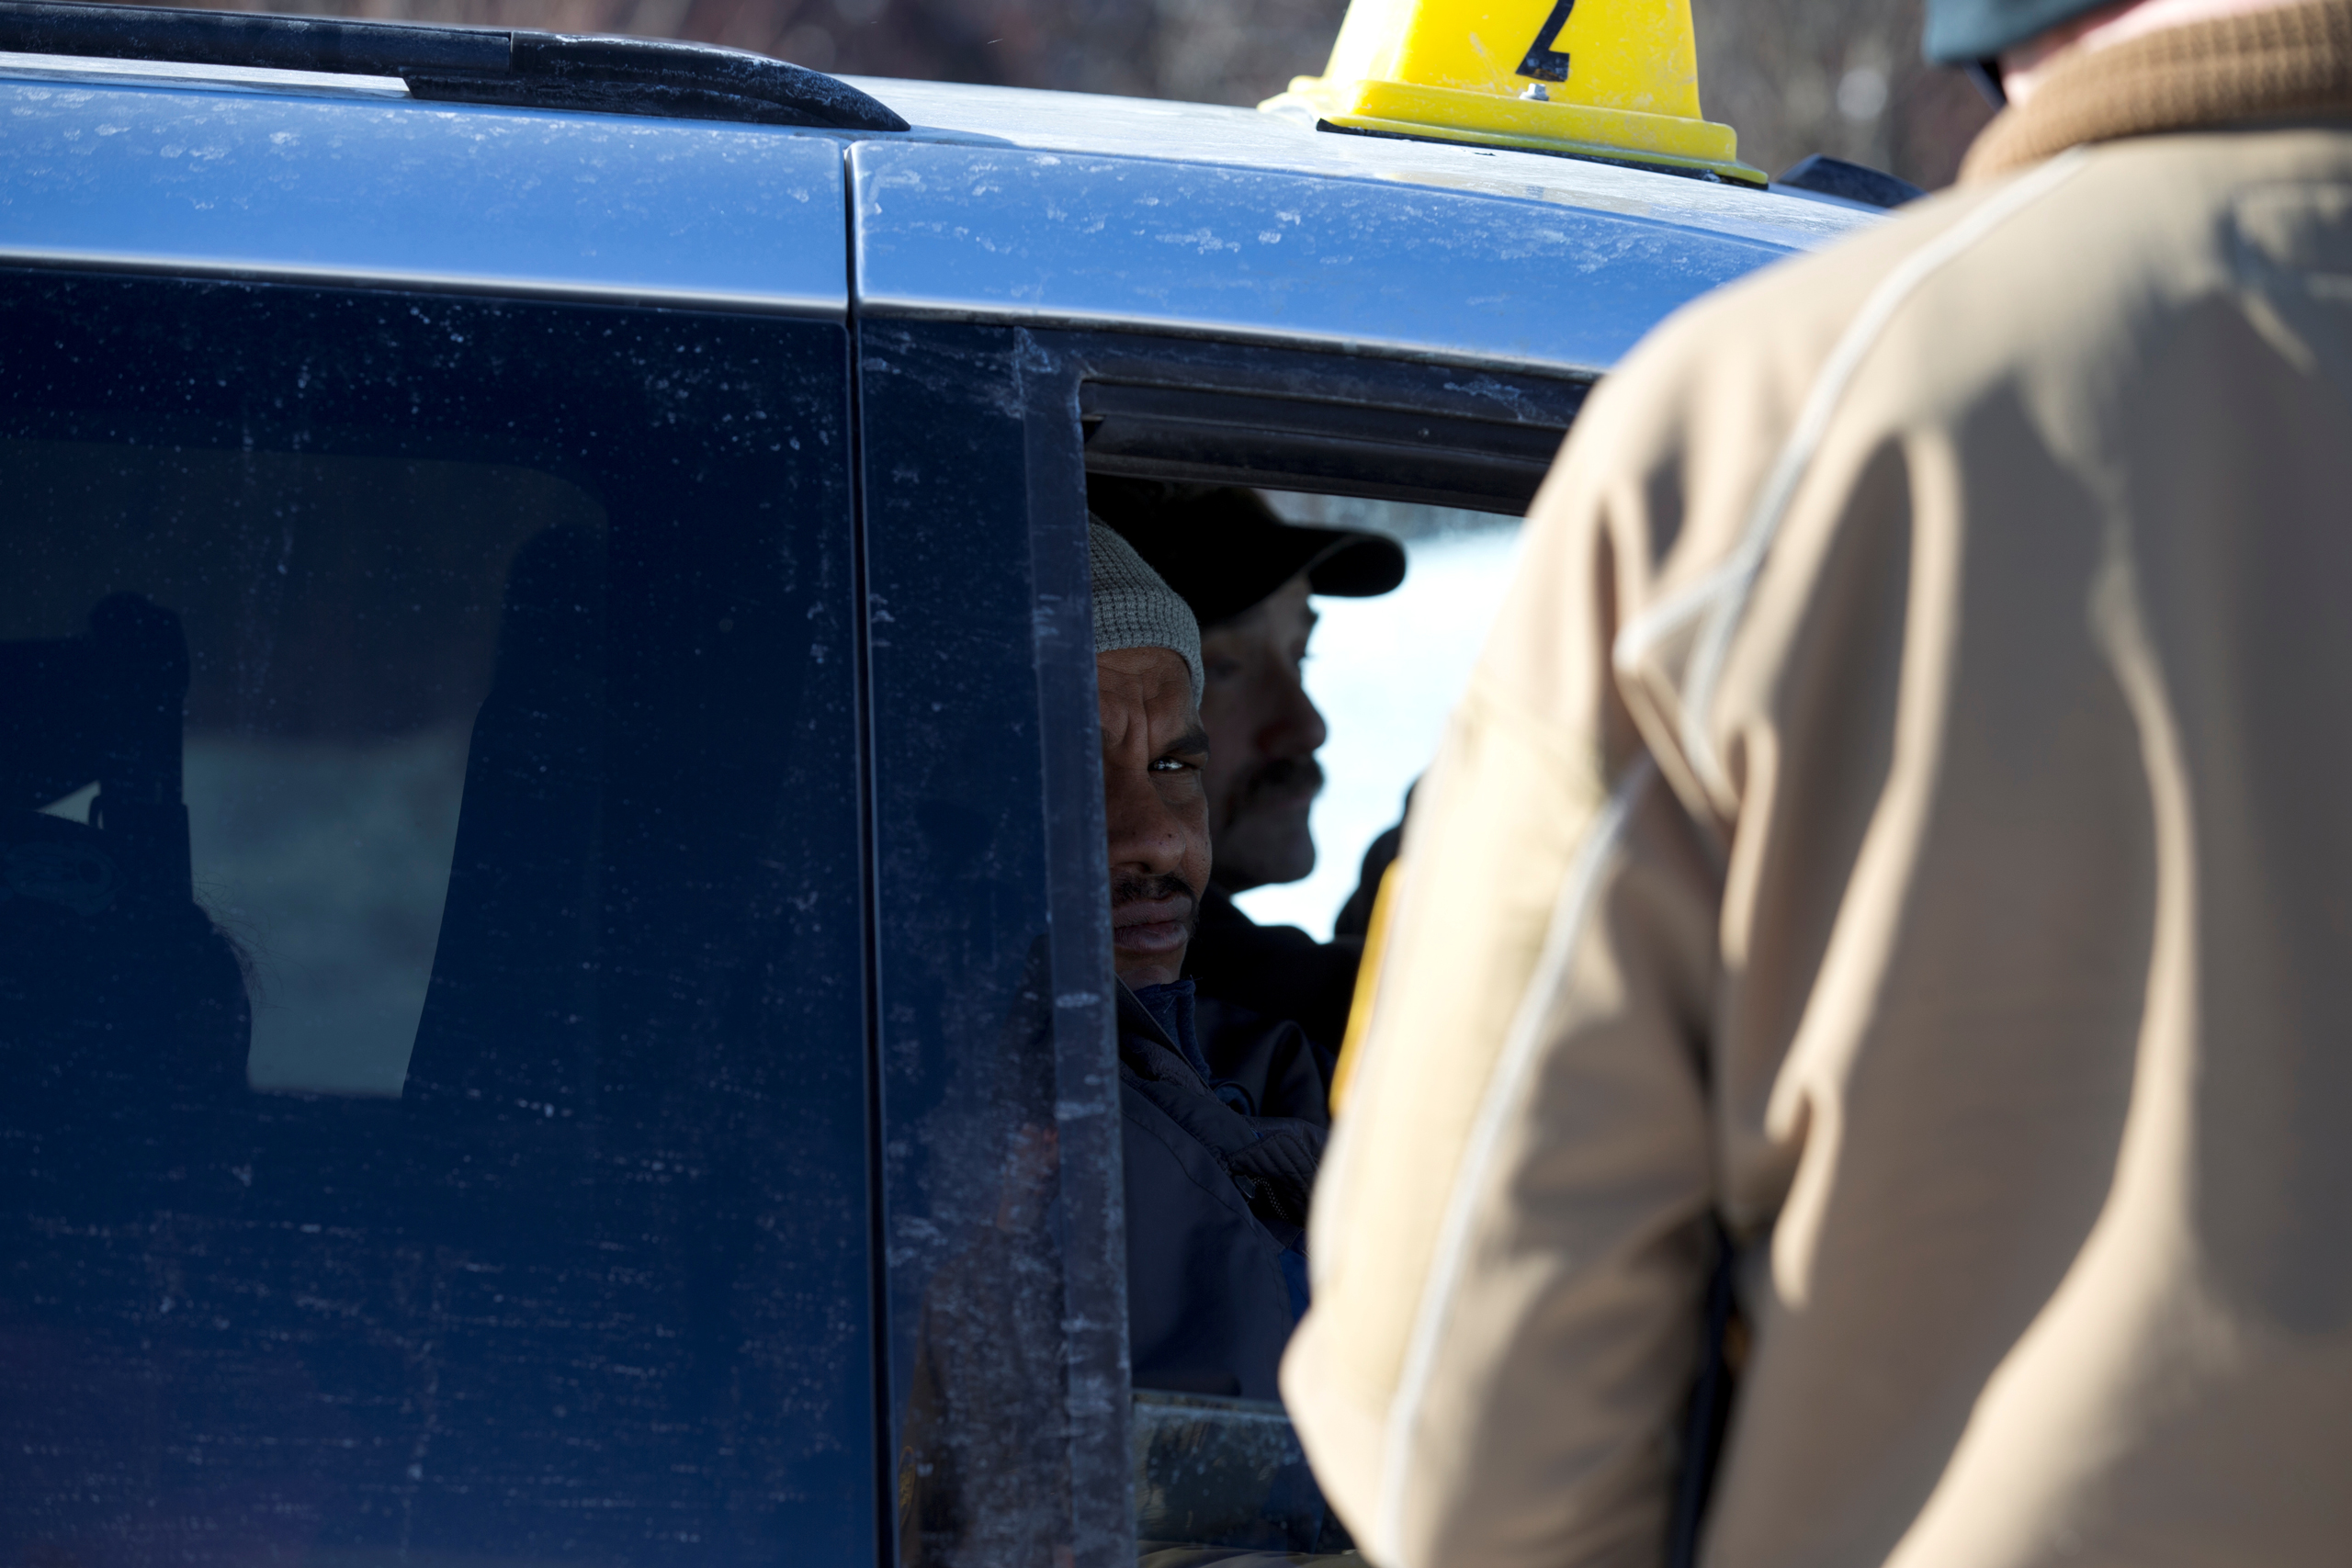 A man who claimed to be from Sudan looks out the taxi window as a U.S. border patrol officer checks his passport and visa at the U.S.-Canada border into Hemmingford, Canada, from Champlain, N.Y., on Feb. 17, 2017.